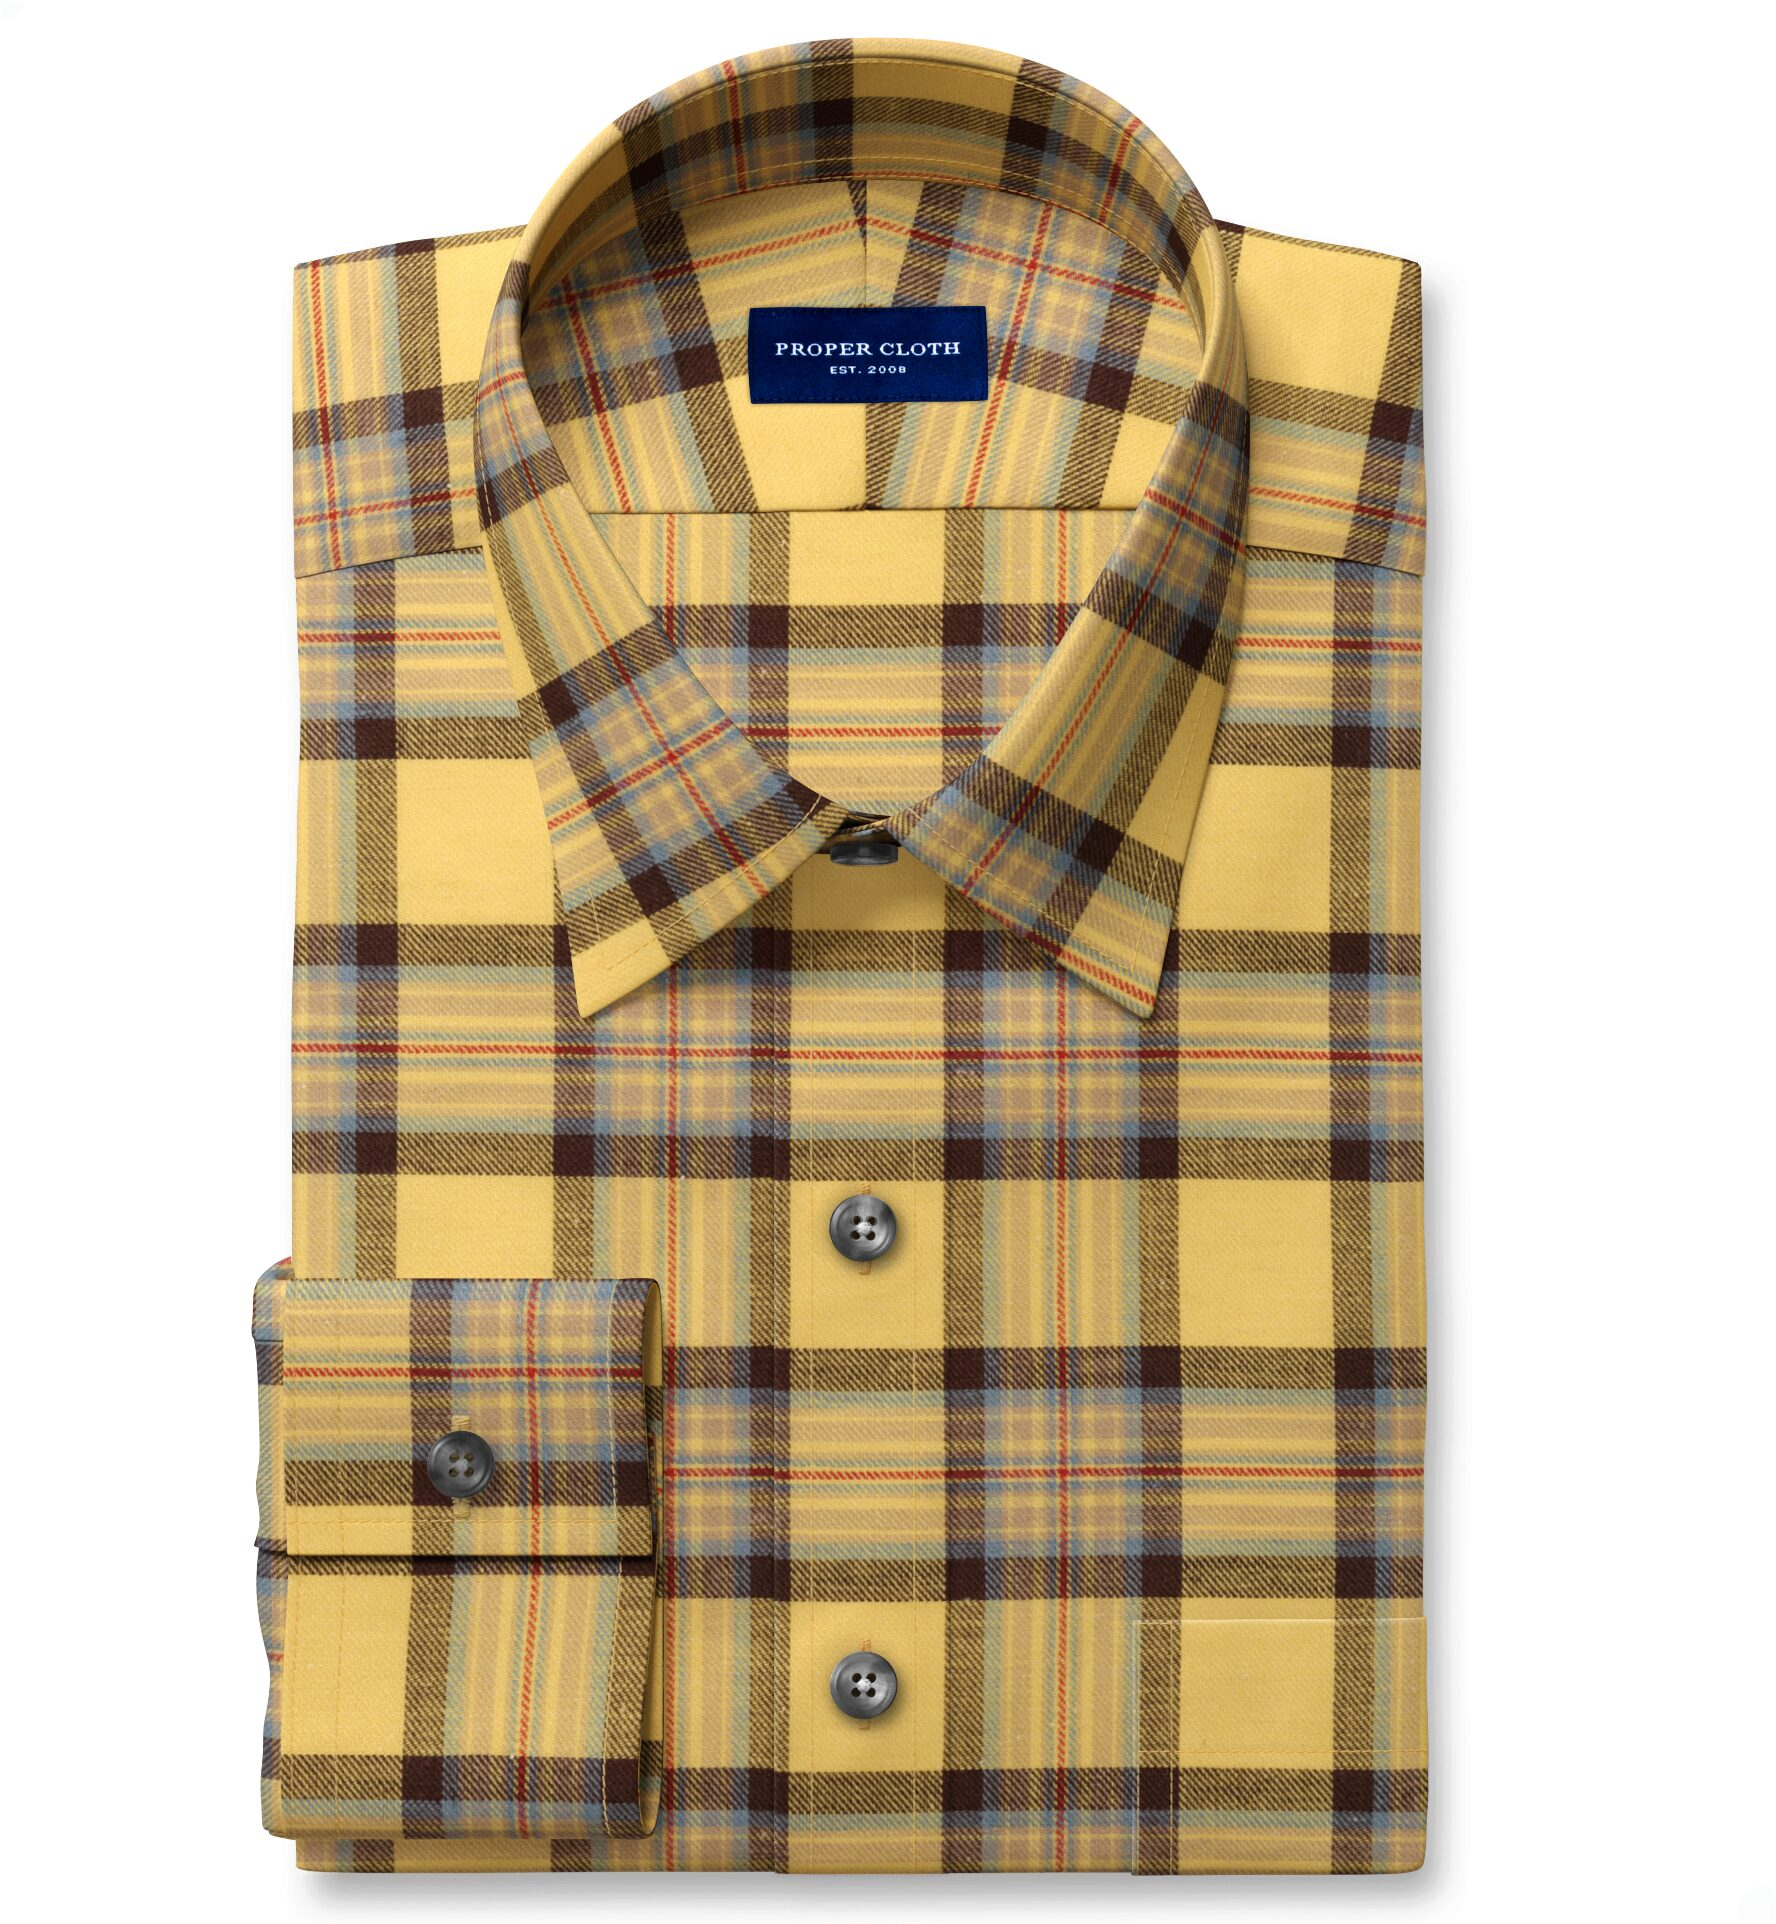 Japanese Yellow and Chocolate Cotton and Linen Plaid